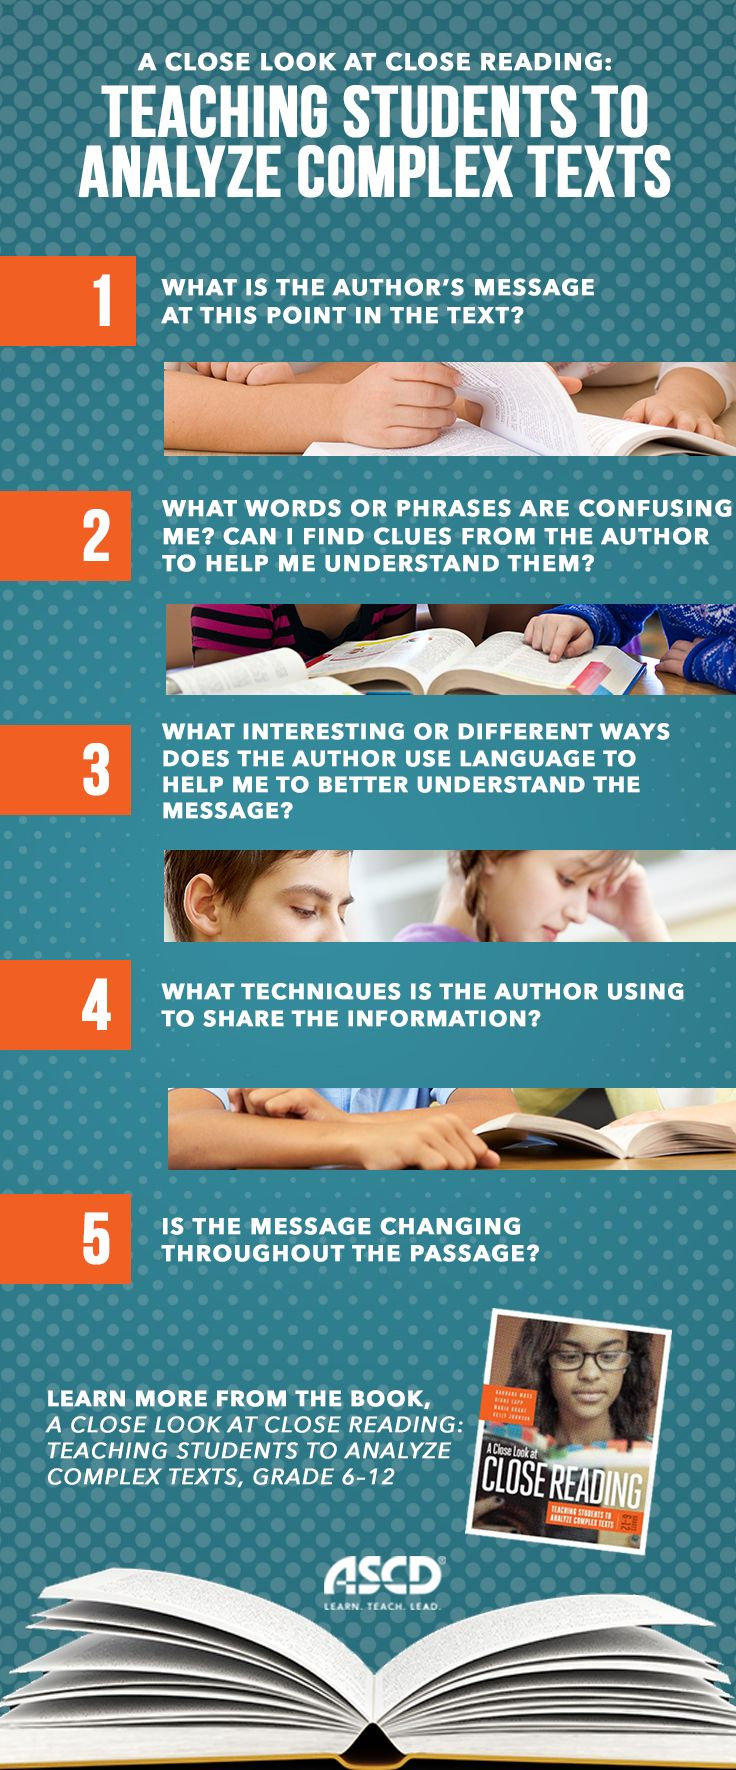 Here are a few questions middle and high school students ask themselves during the close reading process.